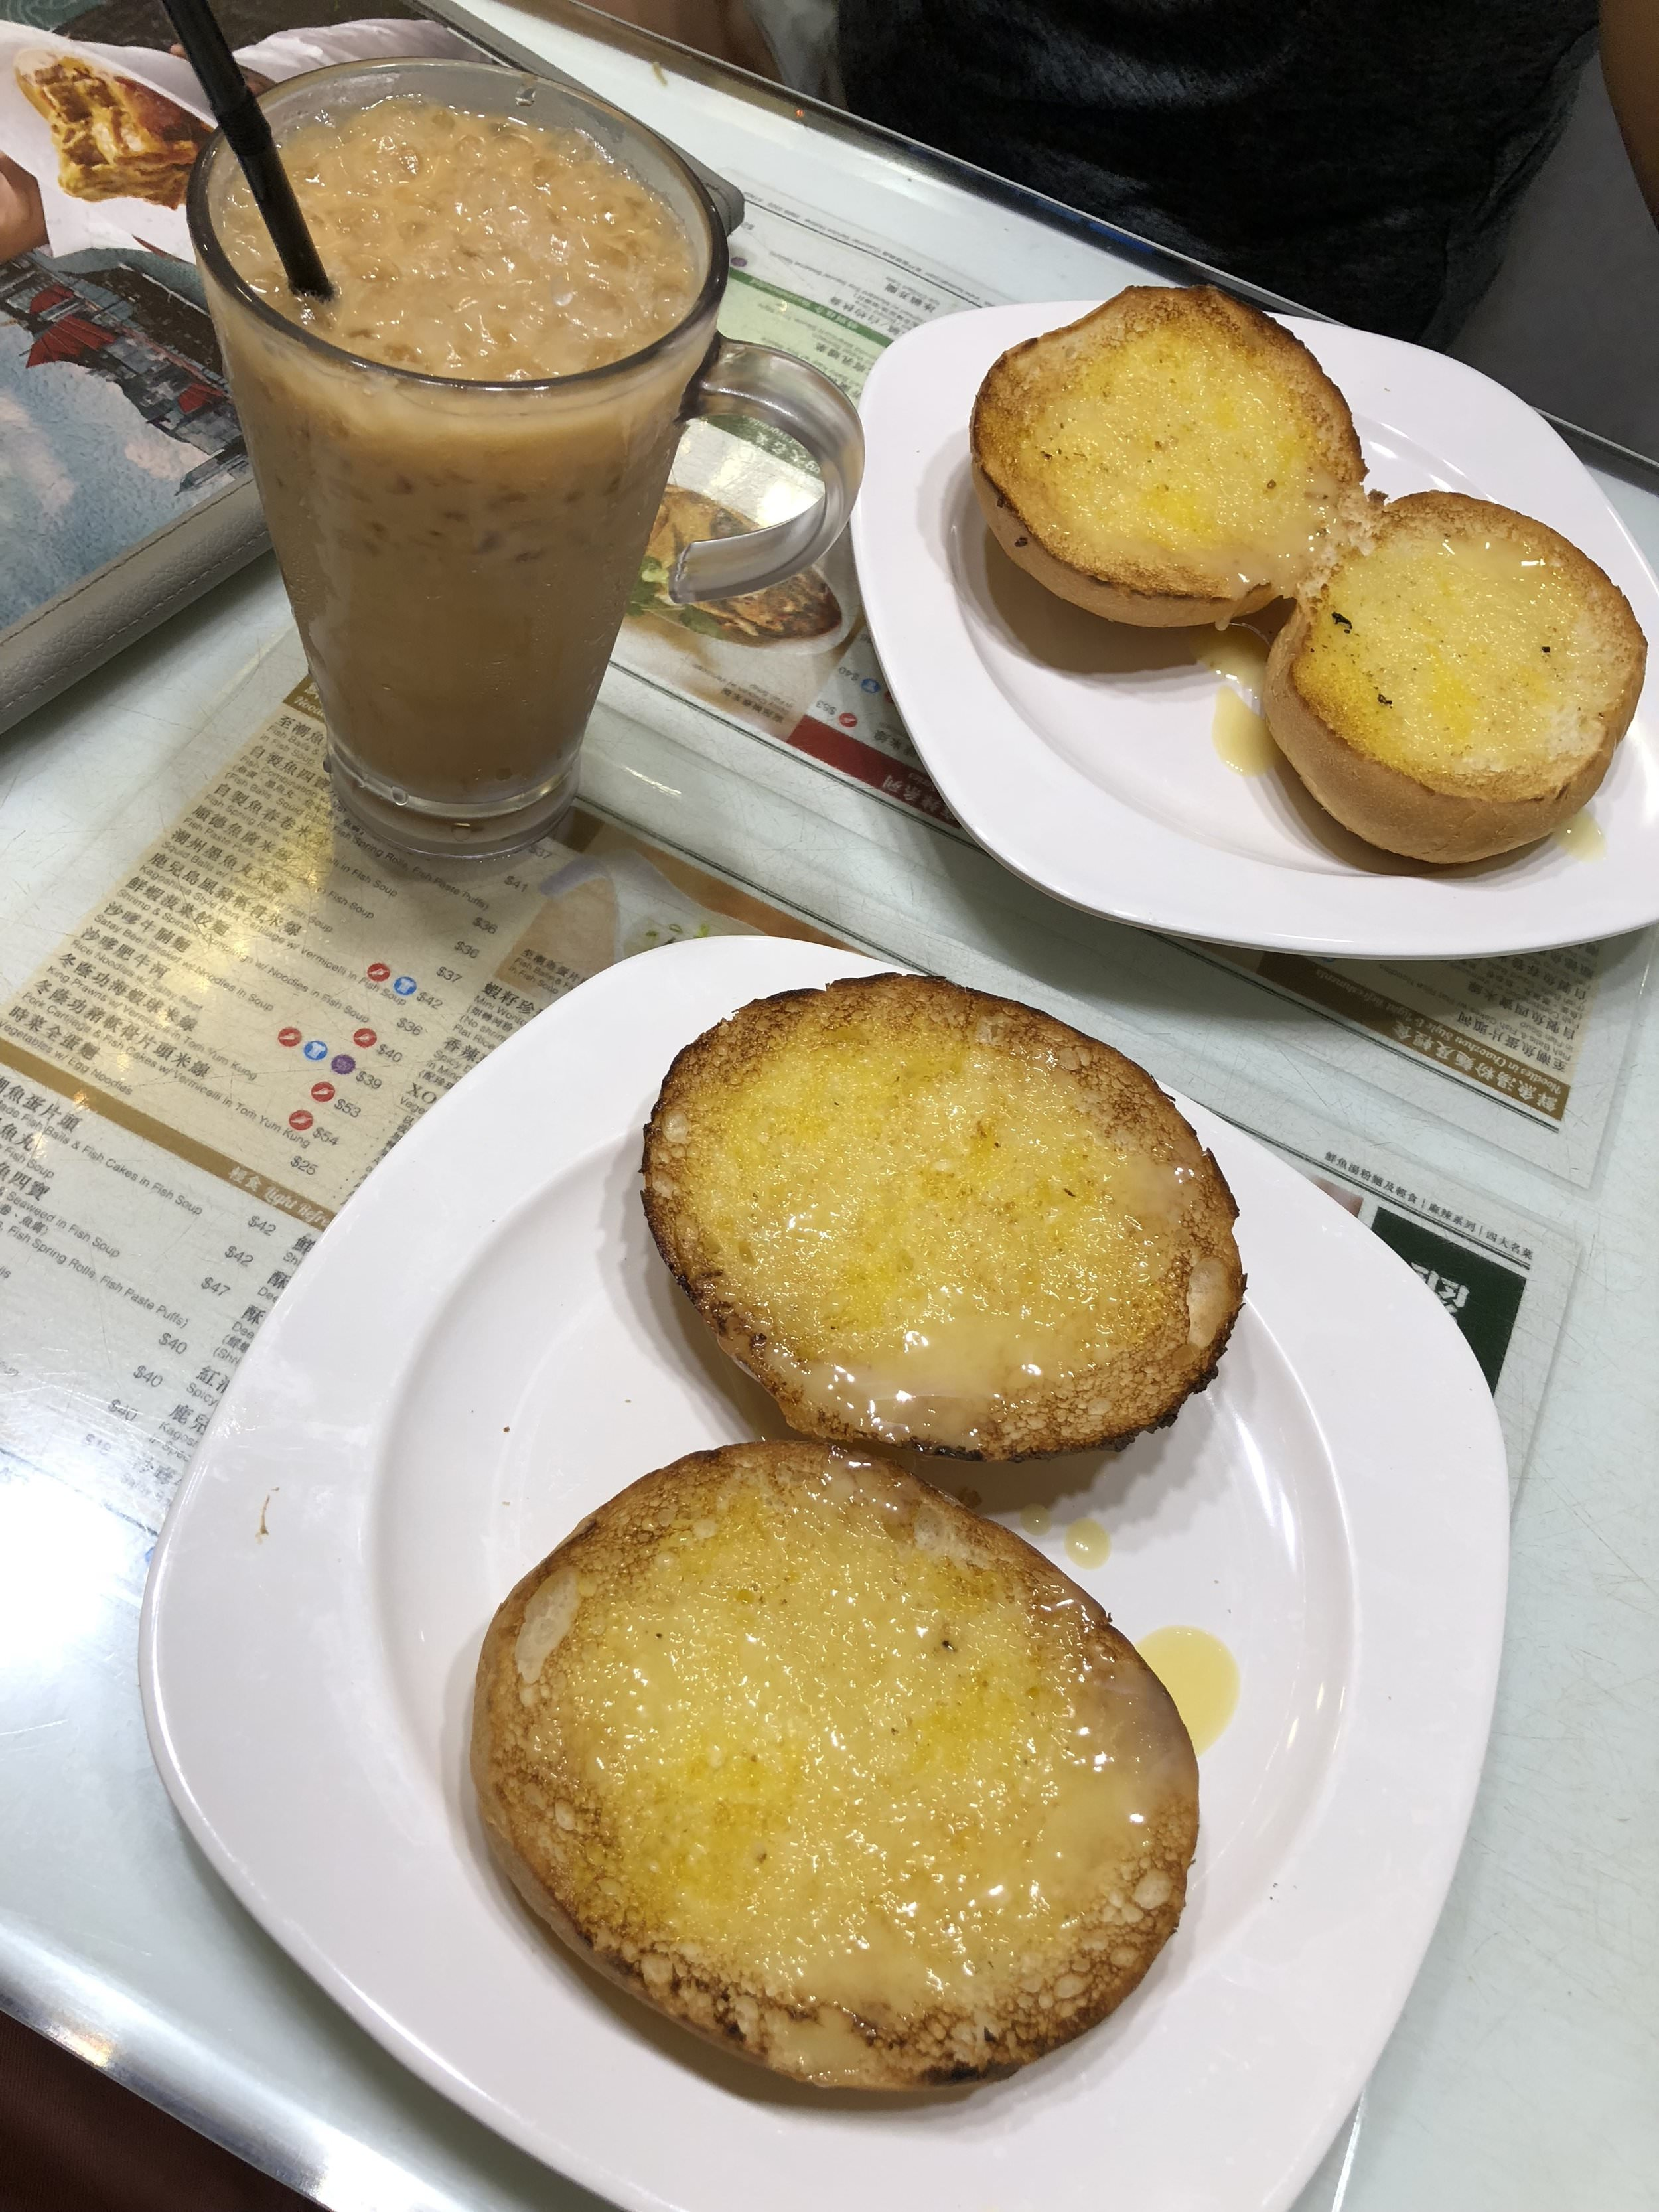 Hong Kong Toast with butter and condensed milk with a Hong Kong milk tea.